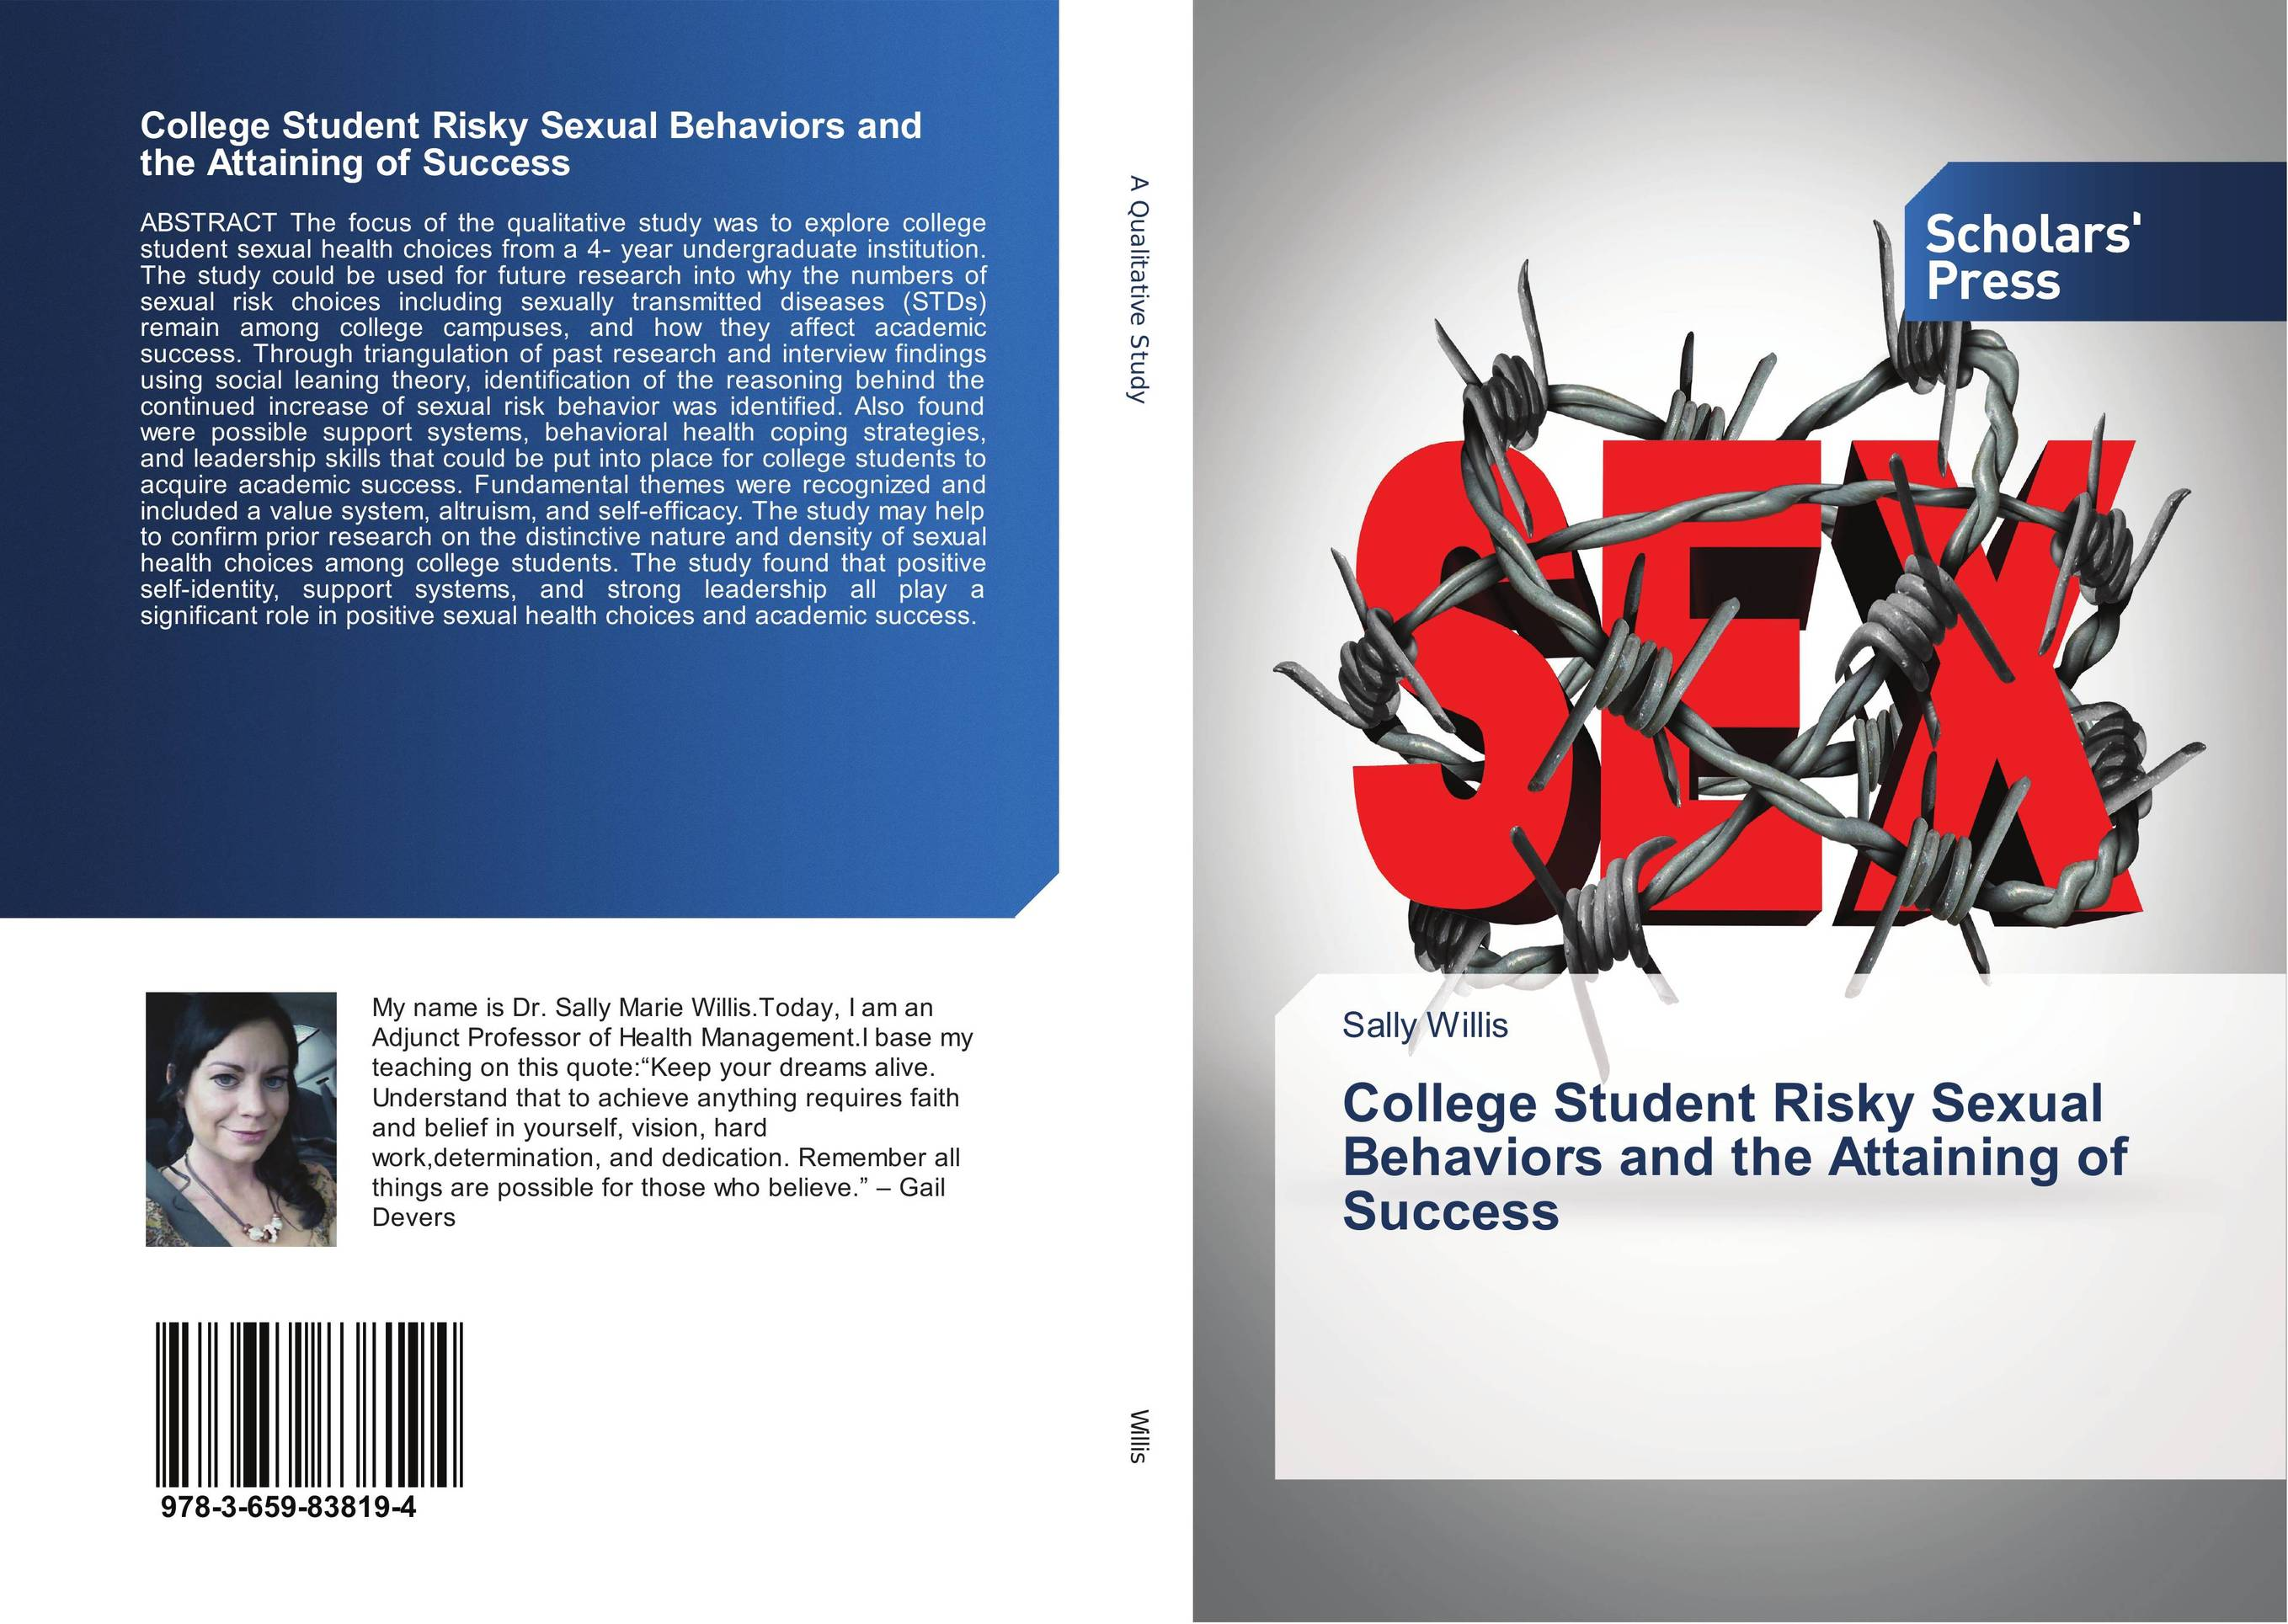 College Student Risky Sexual Behaviors and the Attaining of Success